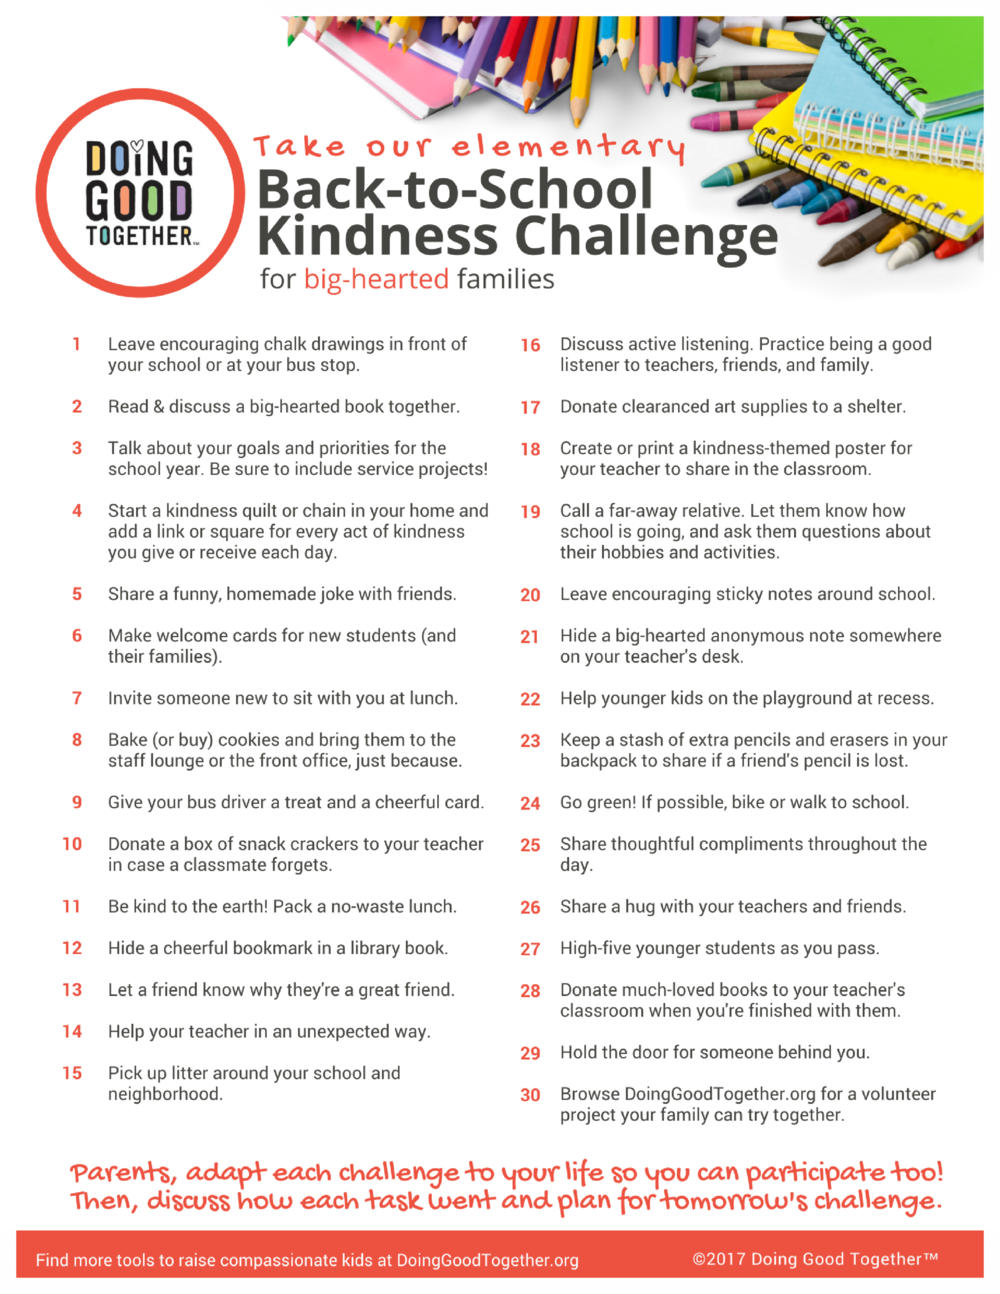 Click to print the elementary back-to-school challenge.